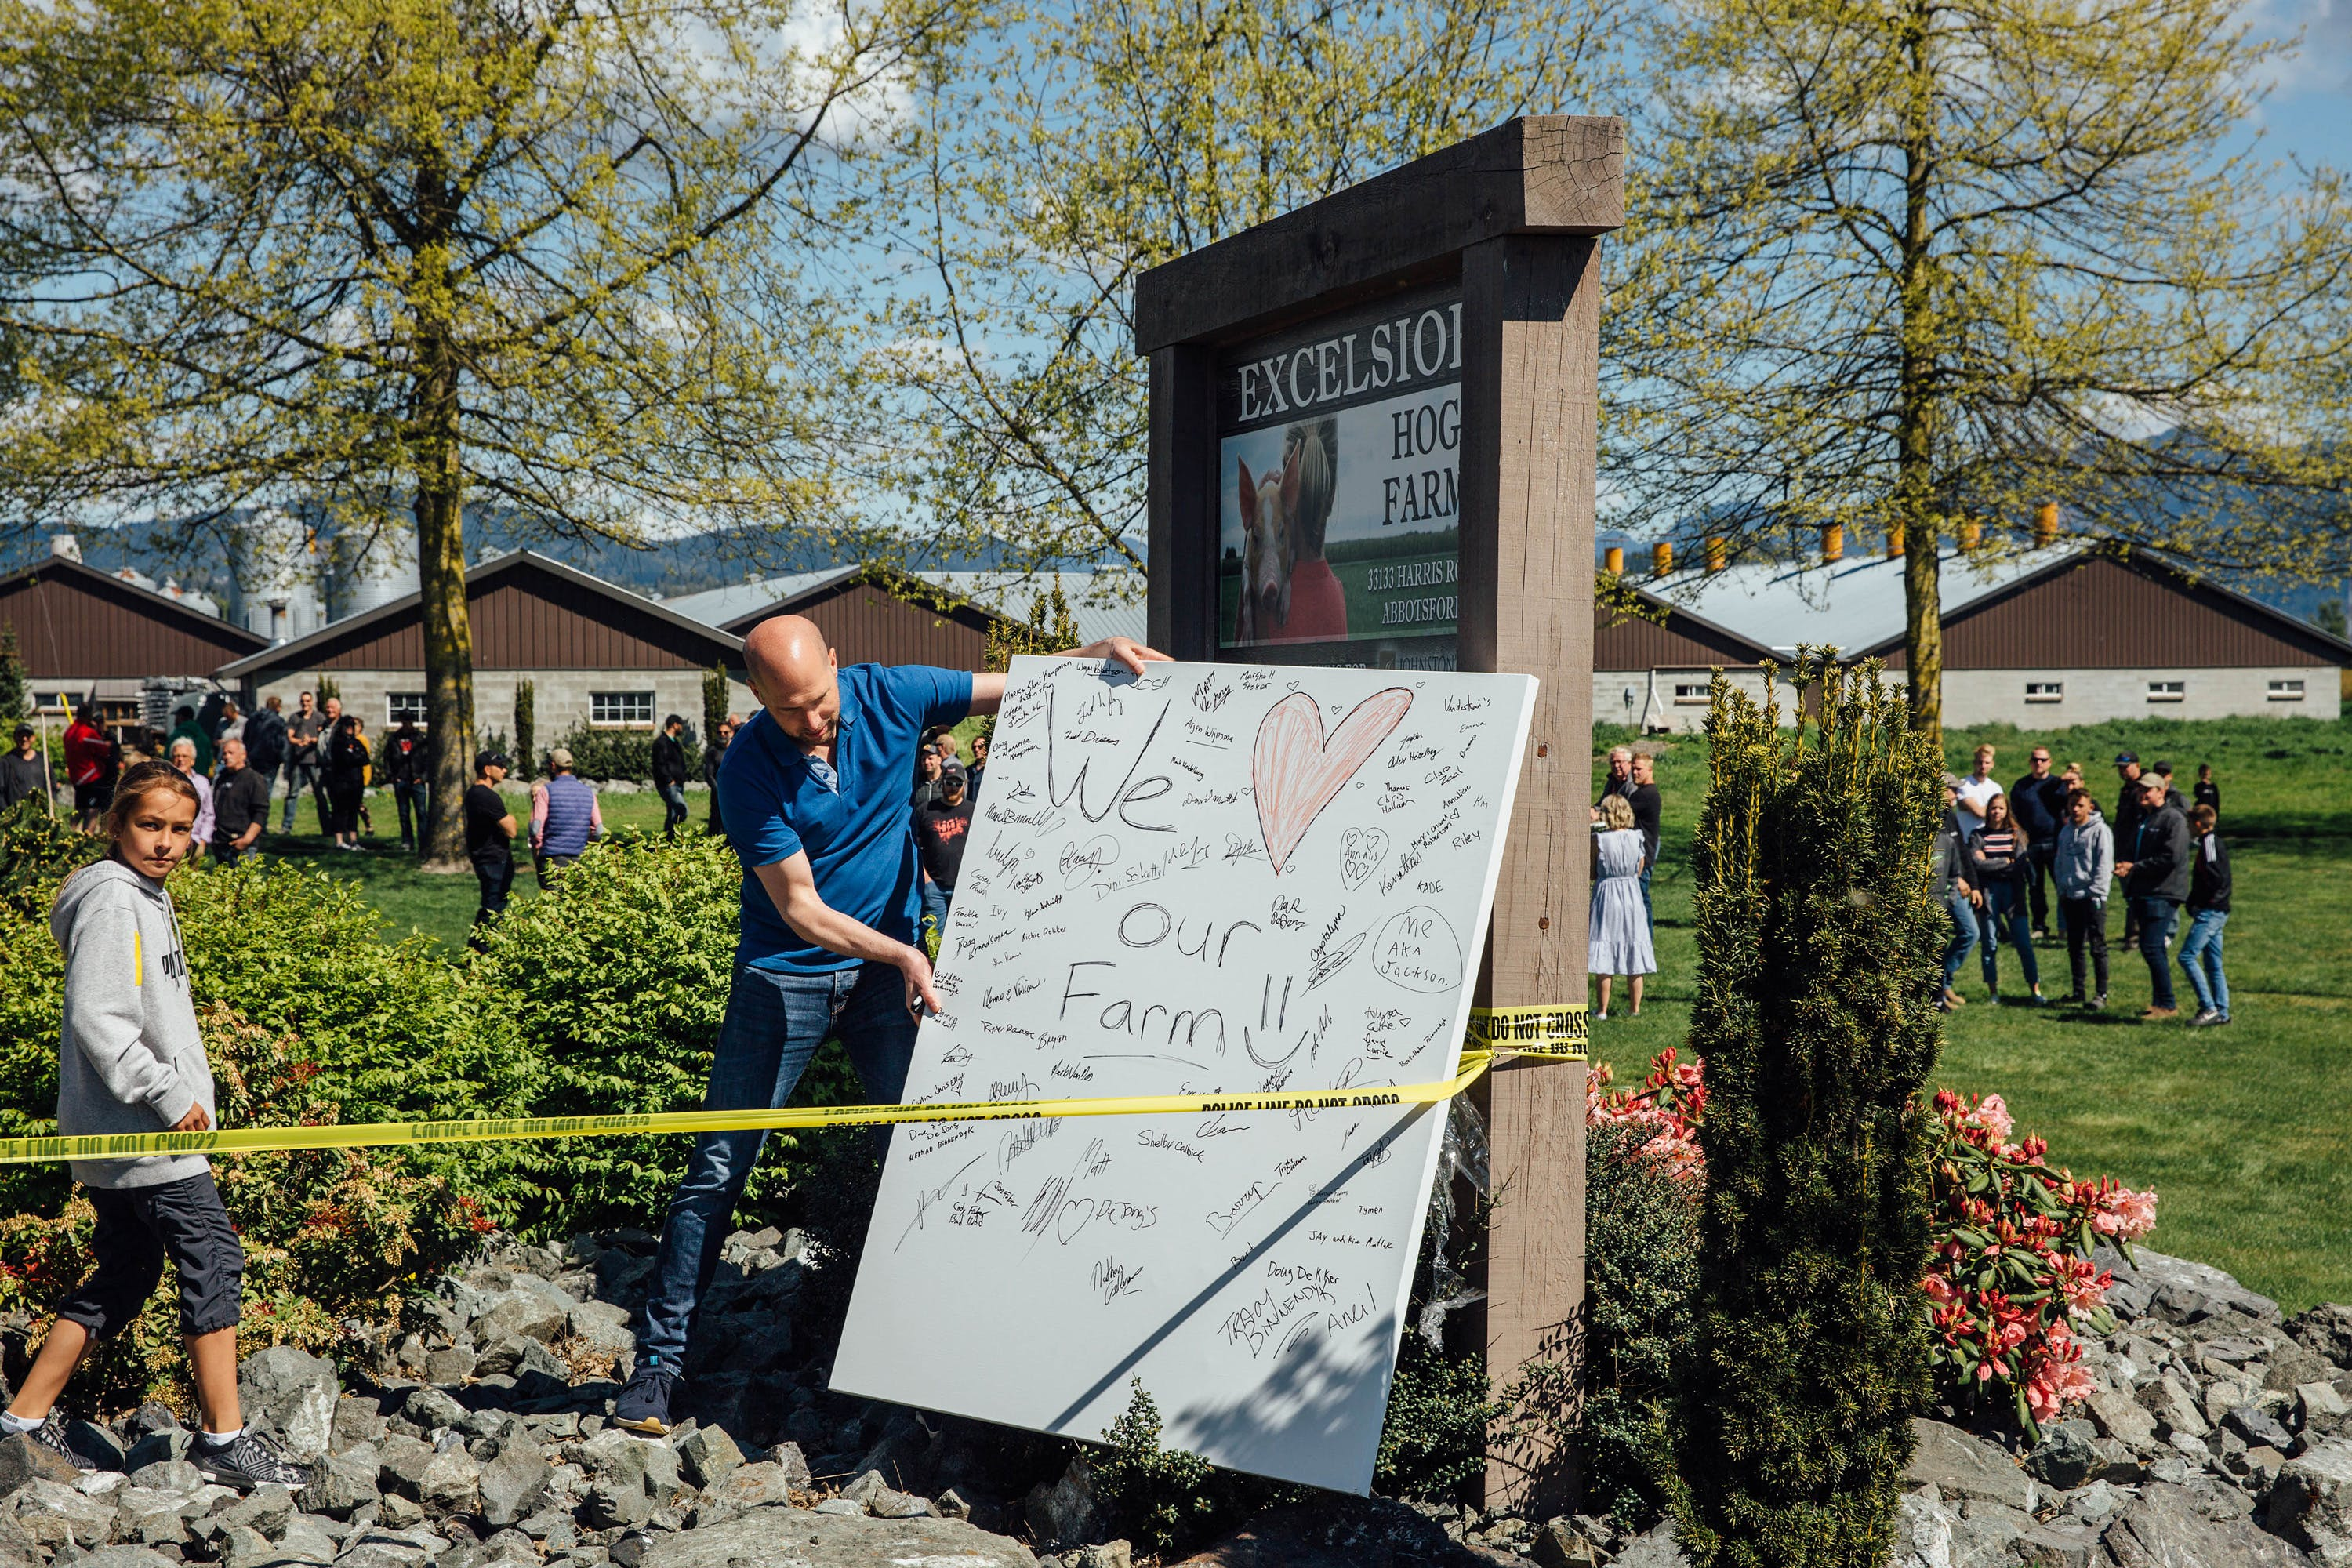 Supporters of the Excelsior Hog Farm family create a sign with their signatures and place it at the entrance to their farm in Abbotsford, B.C. on April 28, 2019.